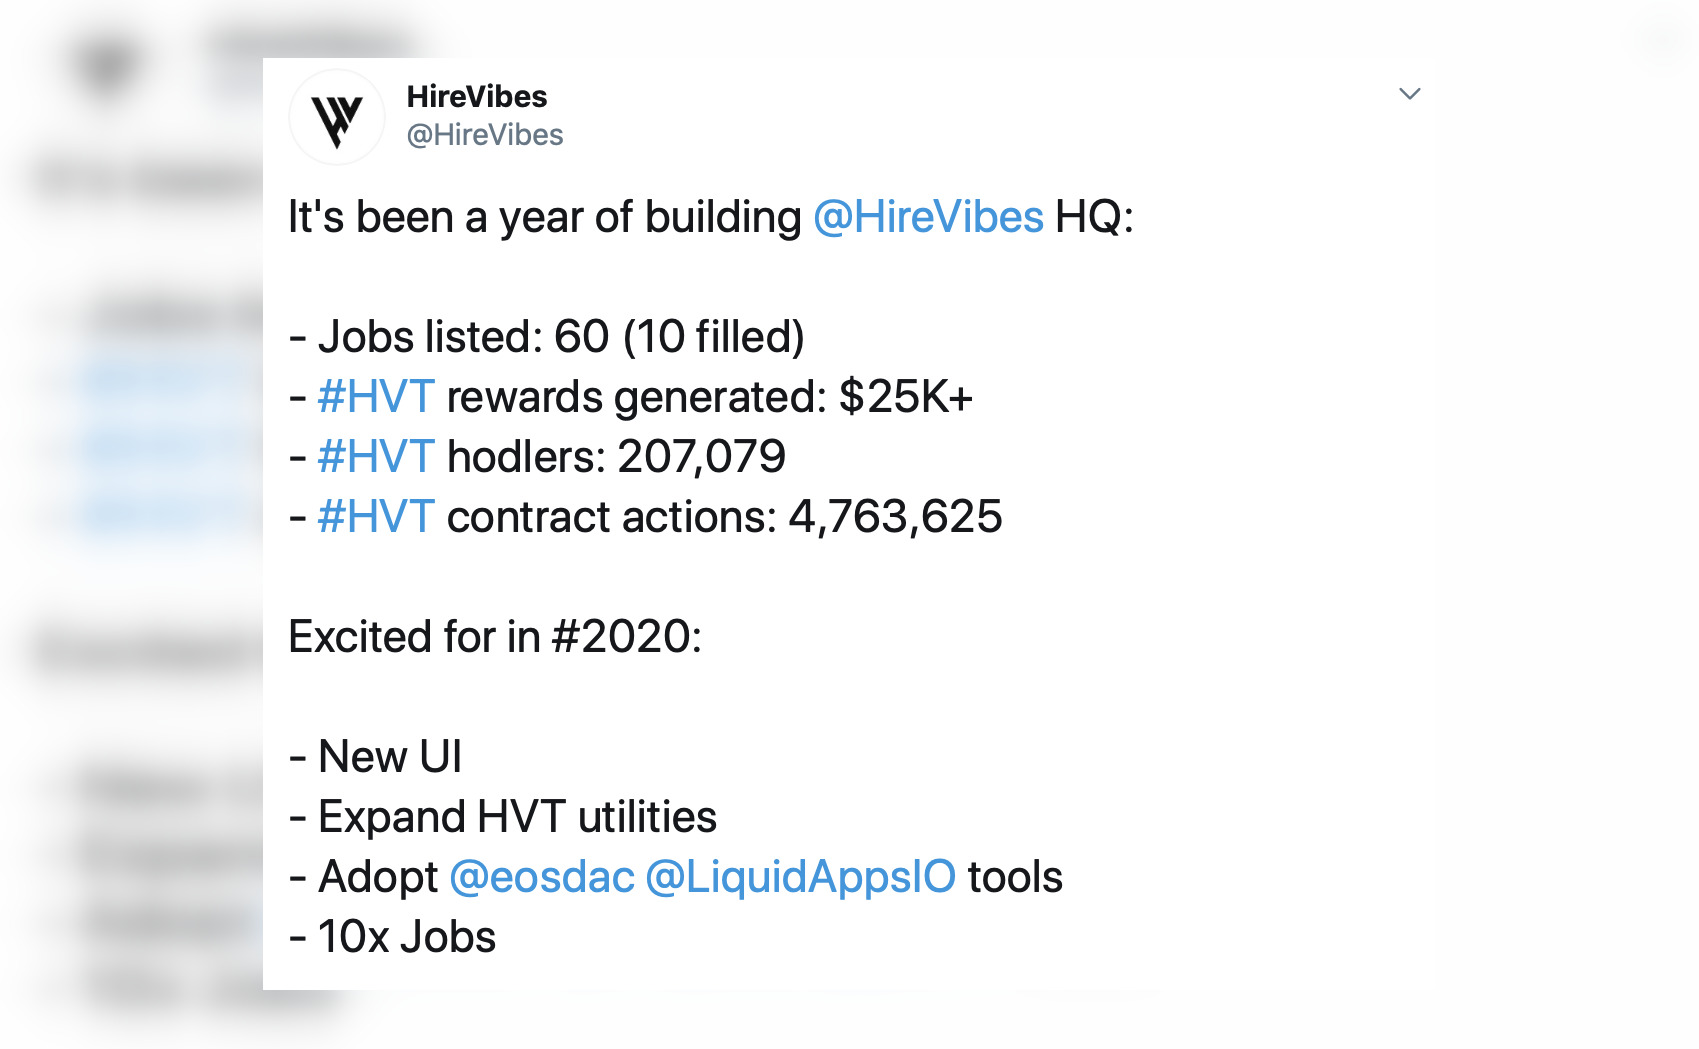 hirevibes-2019